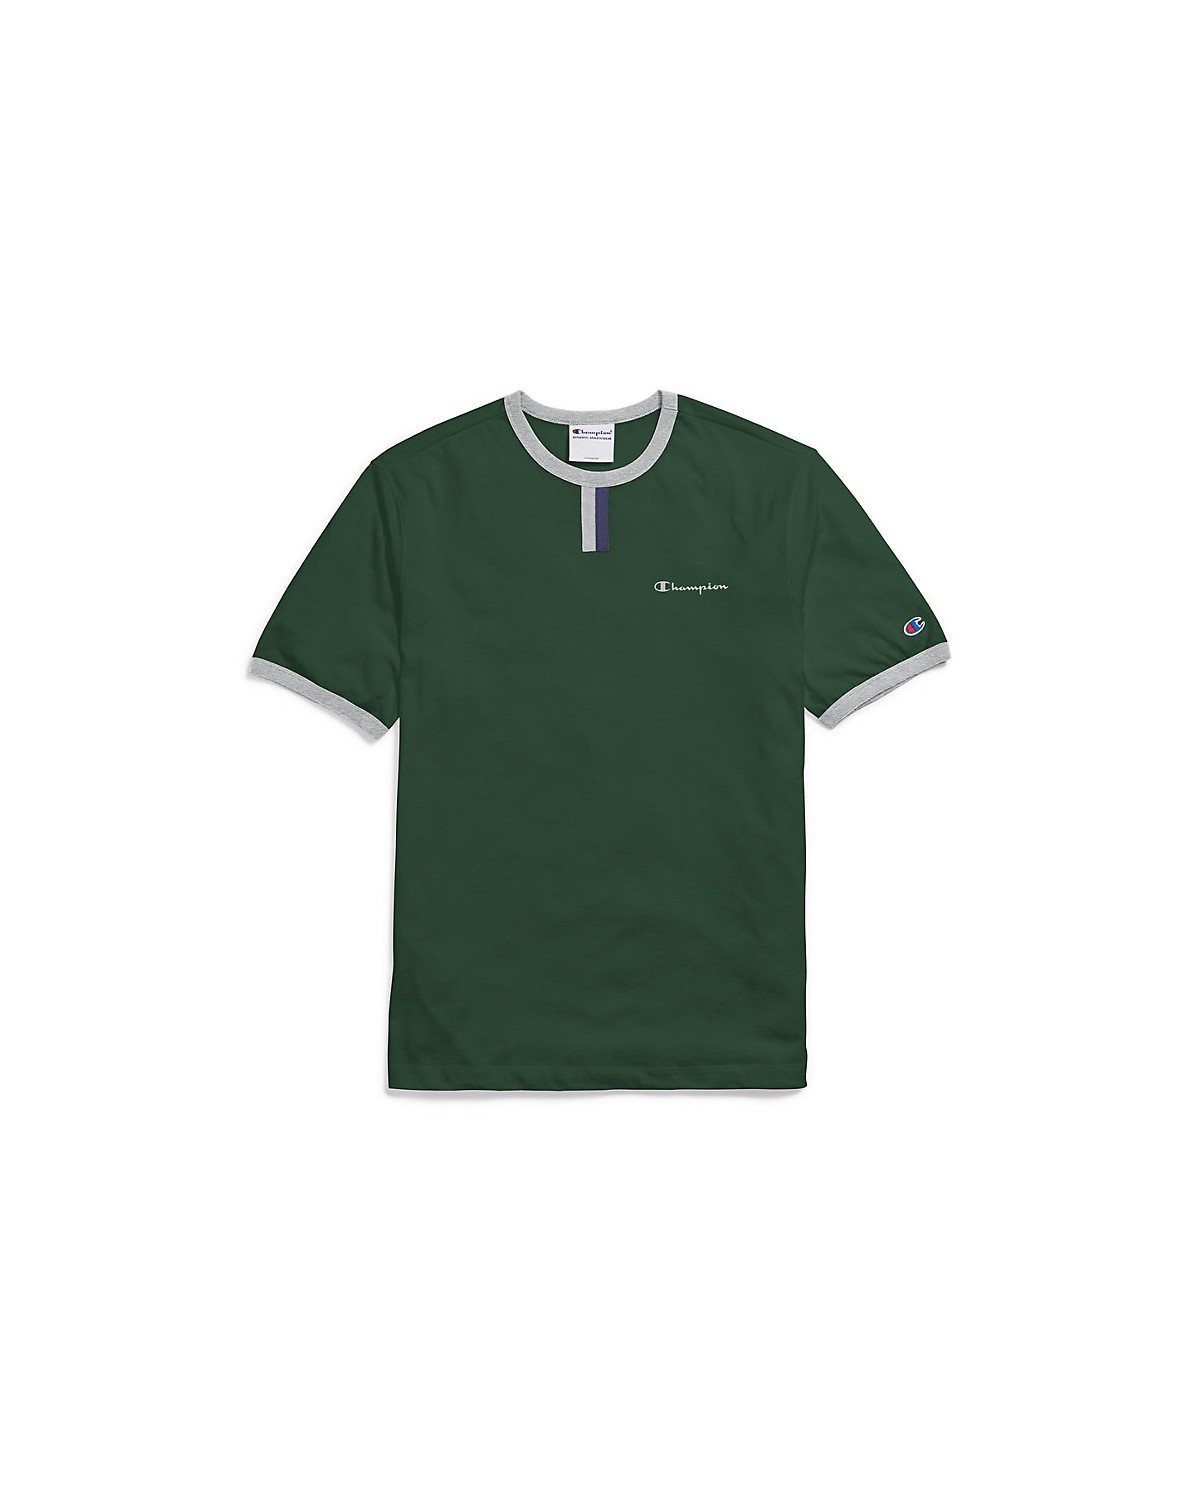 T5050 550031 Champion Dark Green/Oxford Grey